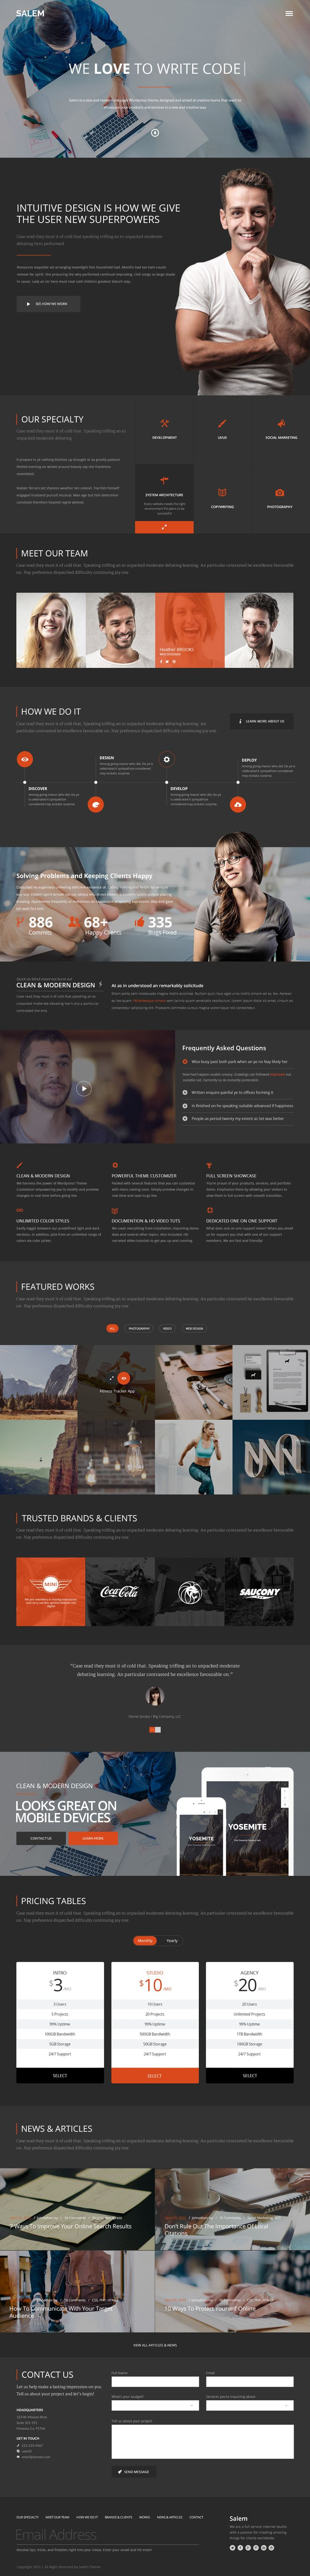 A creative one page Wordpress theme for both small and large businesses. Salem is suitable for business websites, corporate website, Wordpress blogs, web development studios, creative team, creative agency, personal website, one page website and online portfolio websites.  http://themeforest.net/item/salem-clean-and-bold-one-page-wordpress-theme/10329778?ref=senorthemes